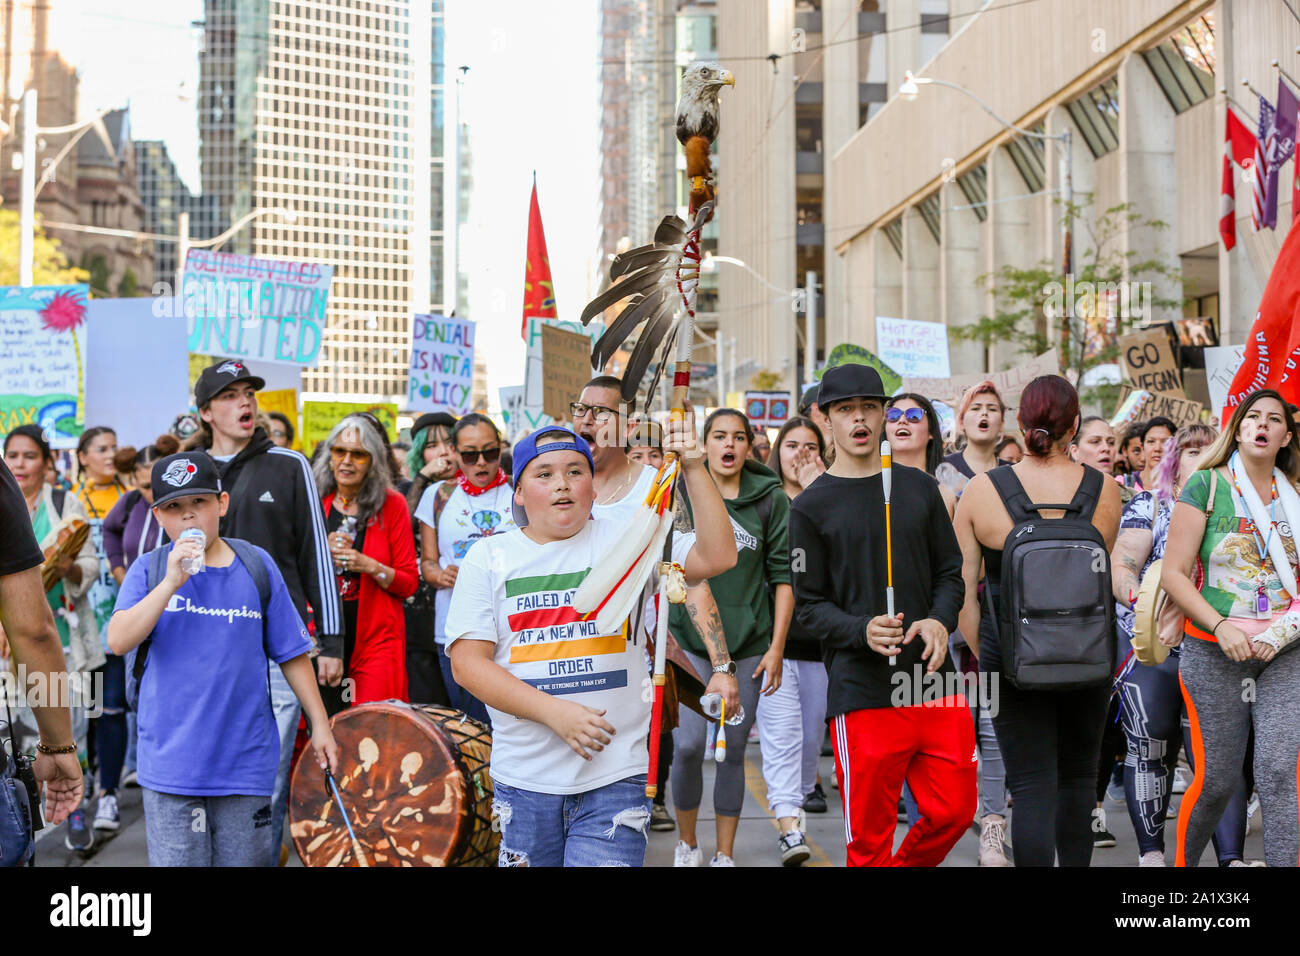 TORONTO, ONTARIO, CANADA - SEPTEMBER 27, 2019:  'Fridays for Future' climate change protest. Thousands of people march with signs. Stock Photo